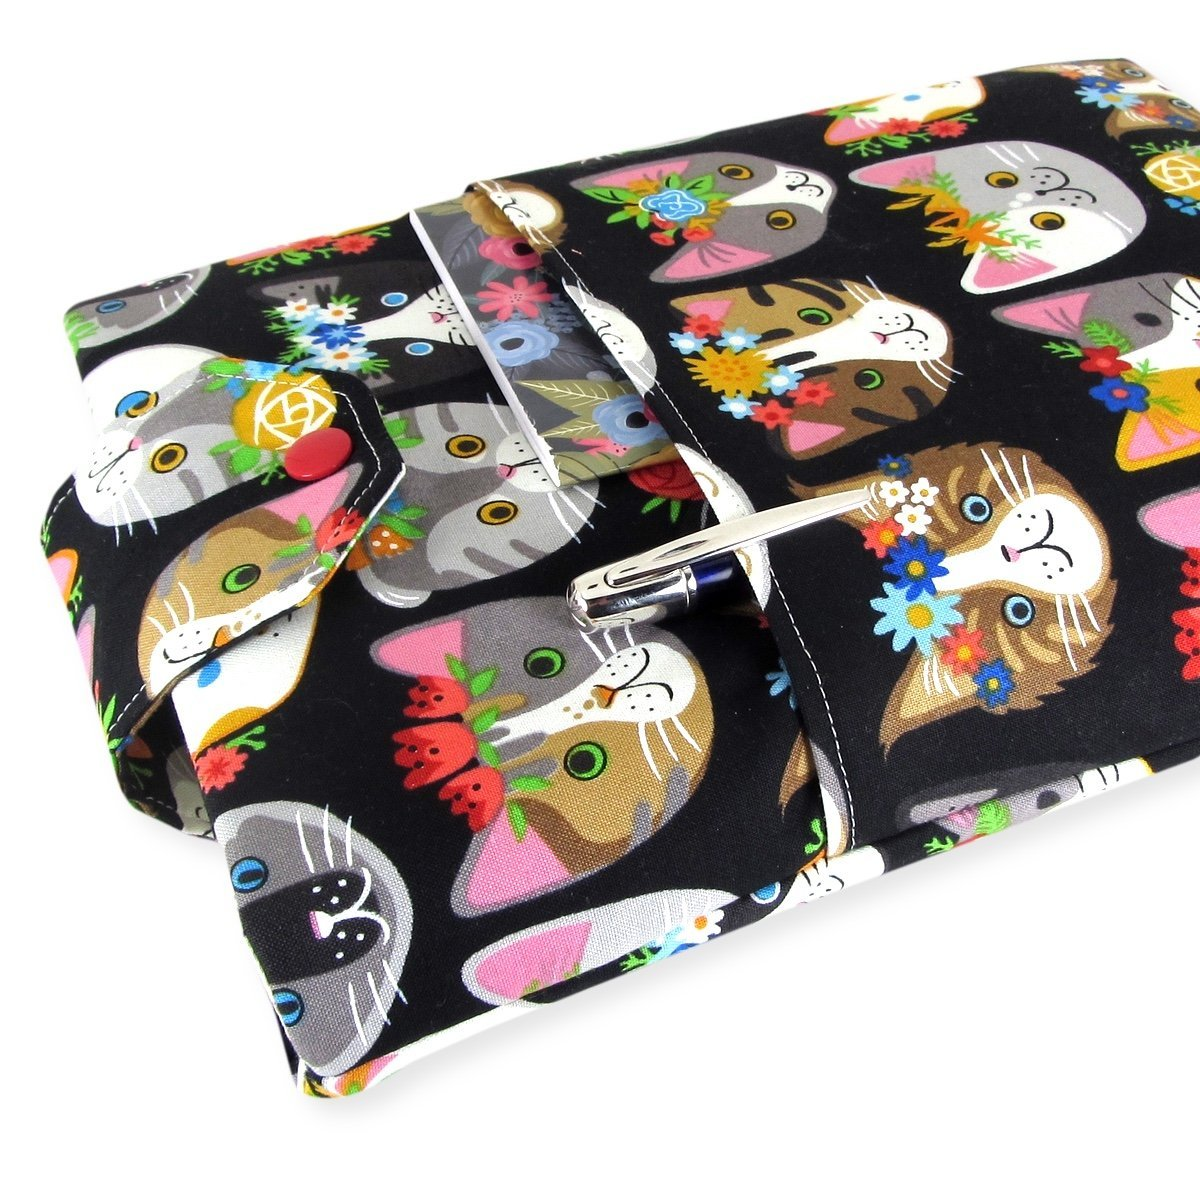 Handmade Fabric Book Sleeve - Perfect For Hardbacks Or Large Paperbacks - Padded, Cute Cat Fabric - Cool Book Lover Gift